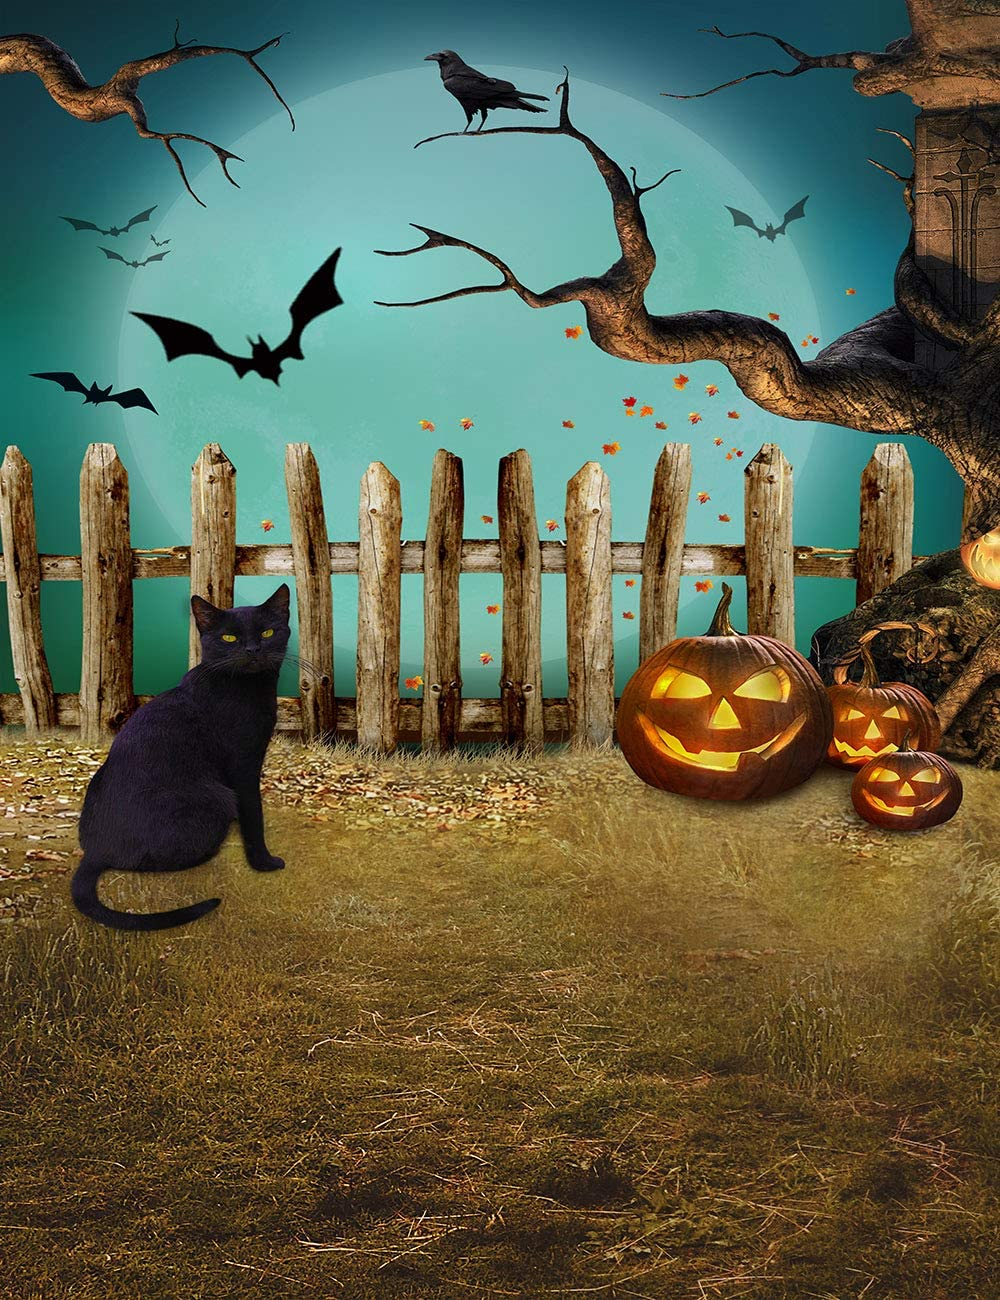 LB Halloween Pumpkin Lantern Backdrop for Photography Cat Bat Crow Fence Old Tree Nightmare Full Moonlight Halloween Party Photo Background for Kids Children 5x7ft Customized Photo Booth Props